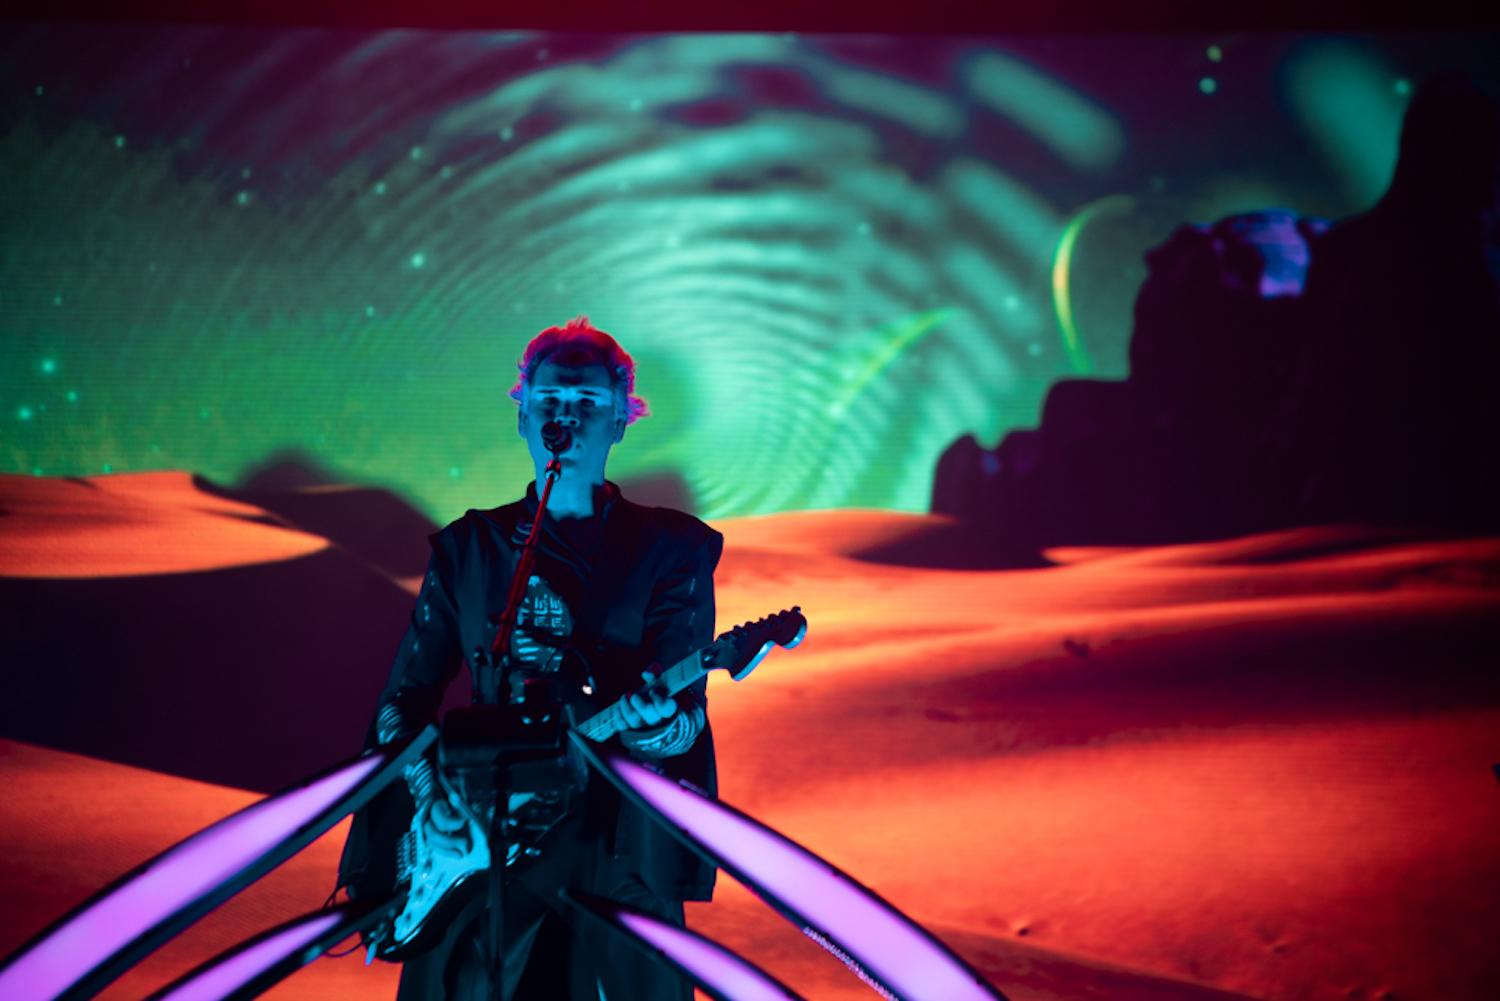 Live Review: Empire Of The Sun at O2 Academy Brixton, London, 09/07/2019